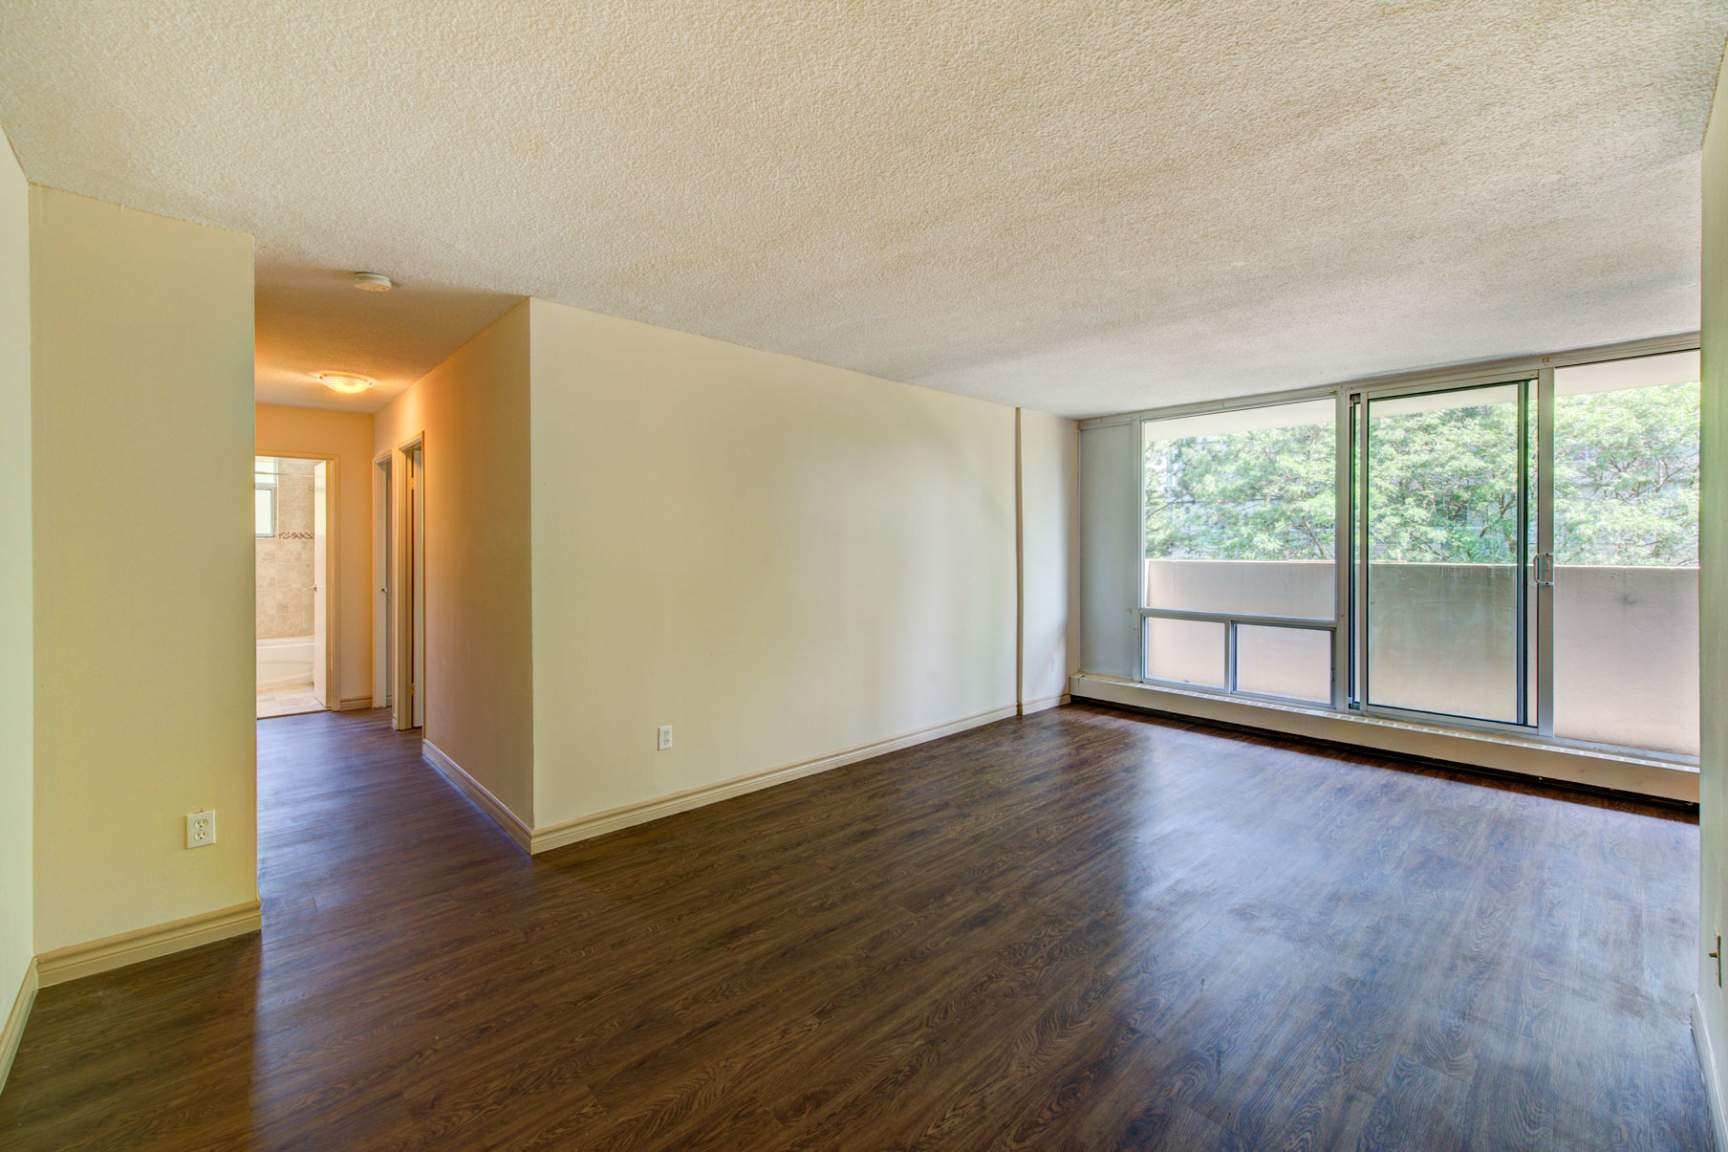 1 bedroom Apartments for rent in Mississauga at Embassy Apartments - Photo 14 - RentersPages – L138718